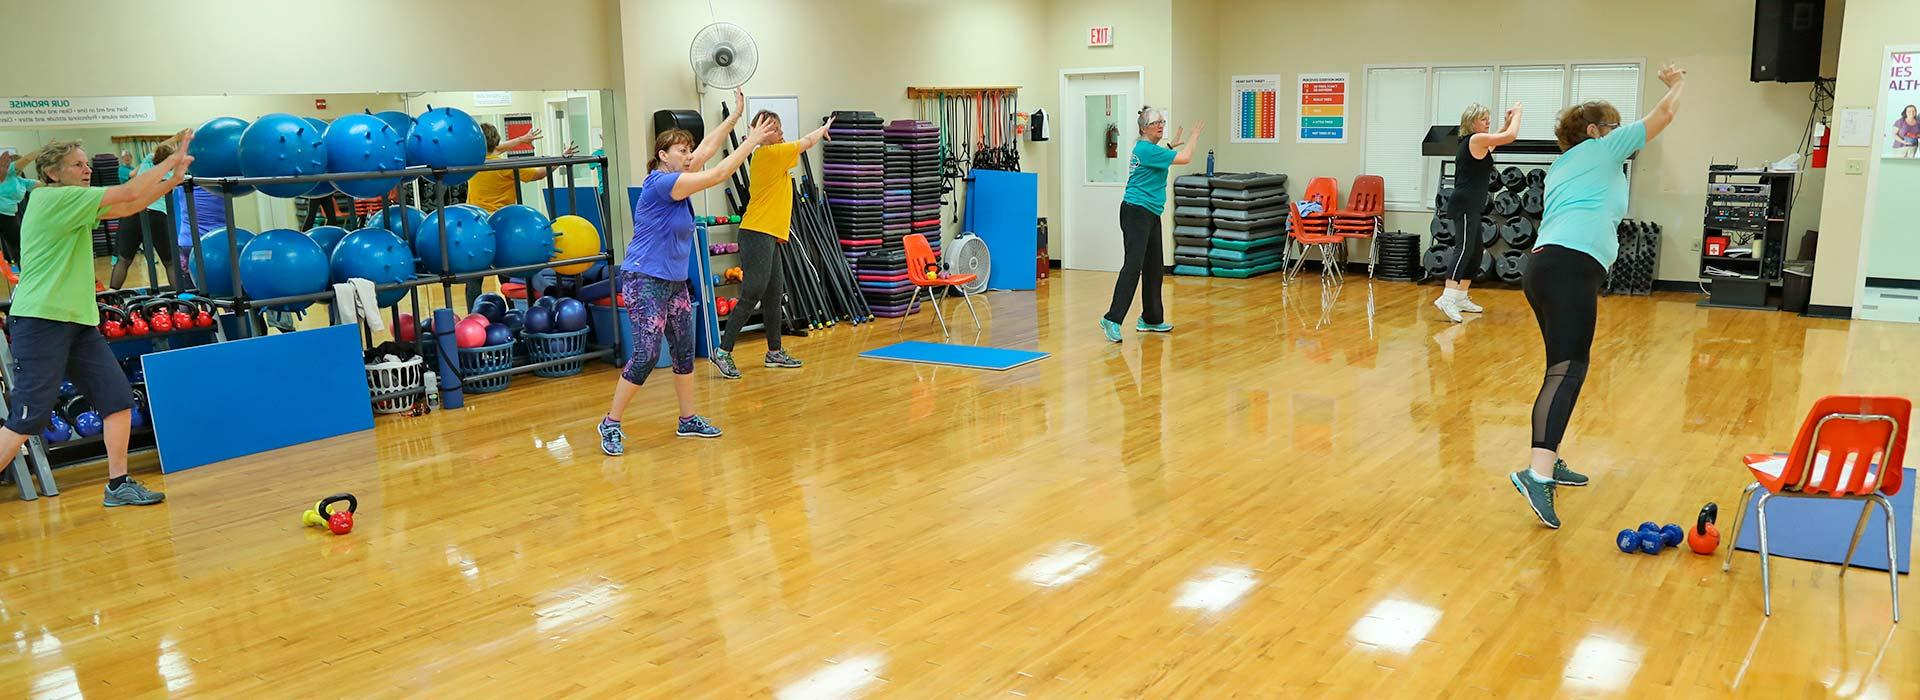 Eastern Shore Family YMCA group exercise room